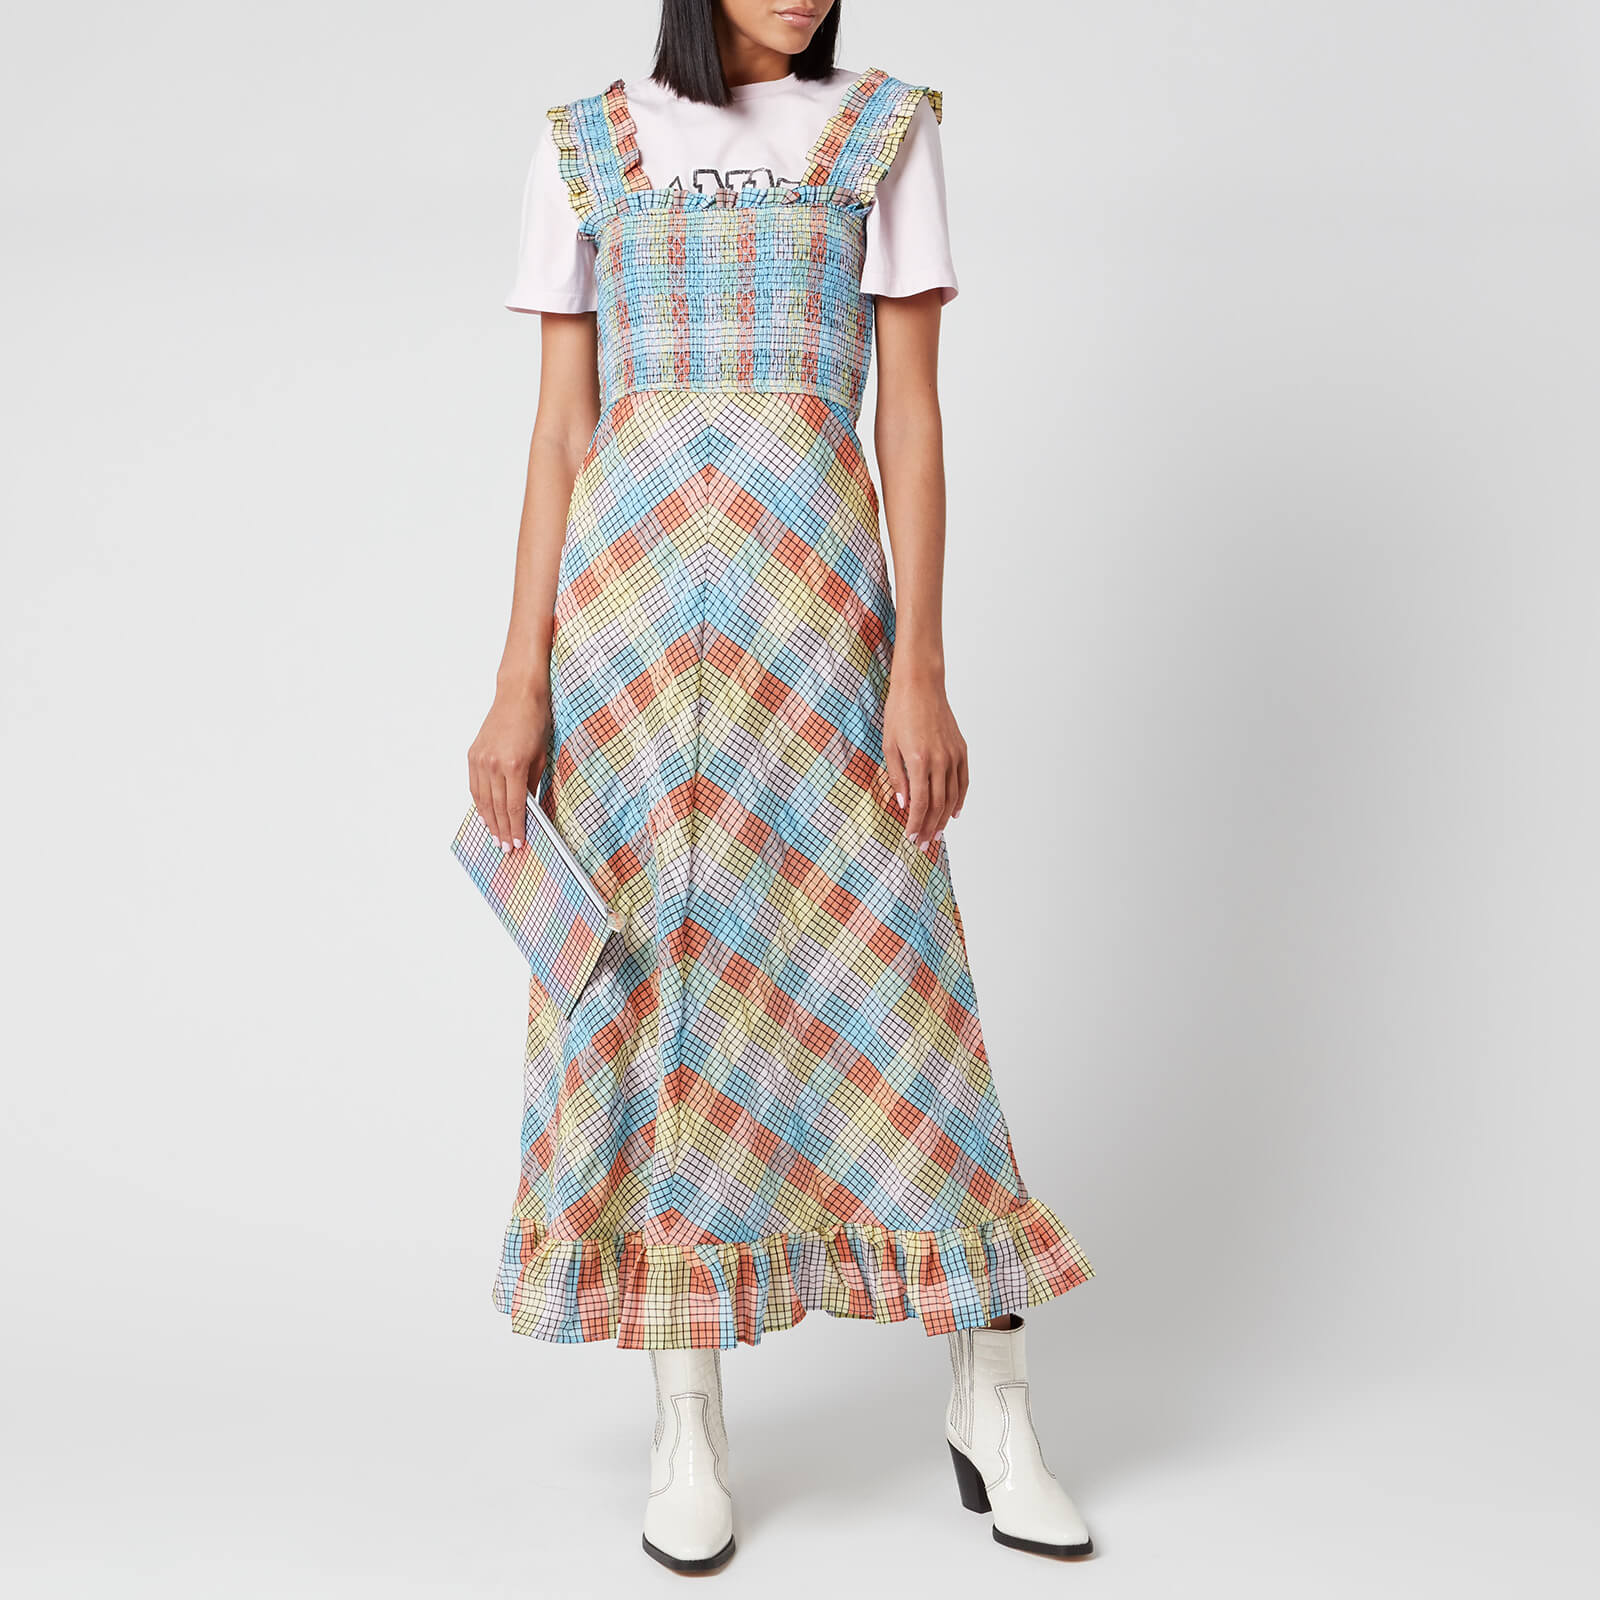 Ganni Women S Seersucker Check Midi Dress Multicolour Free Uk